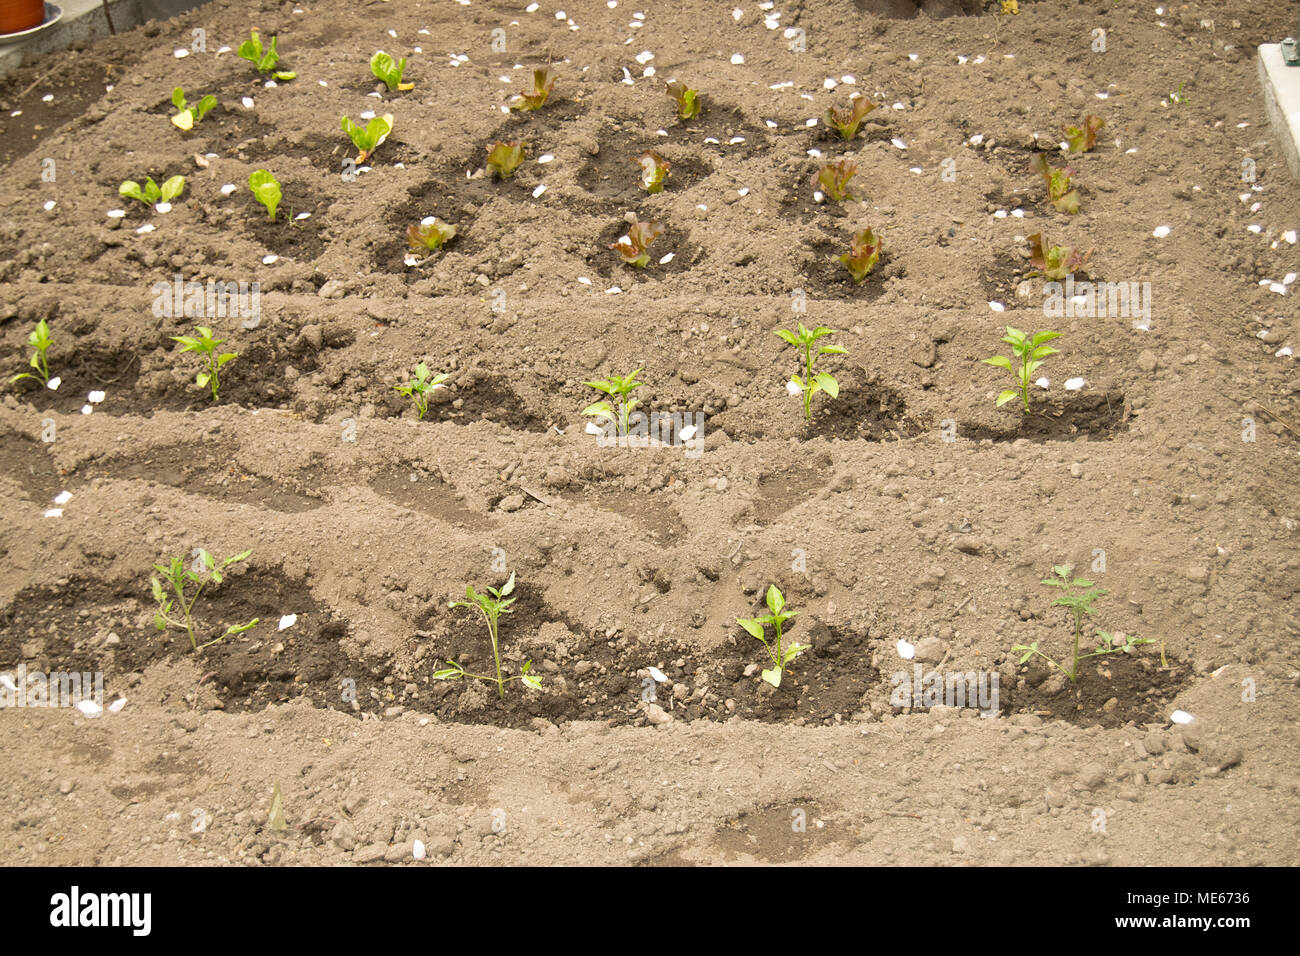 Ecologic and biologic yard agriculture - Stock Image